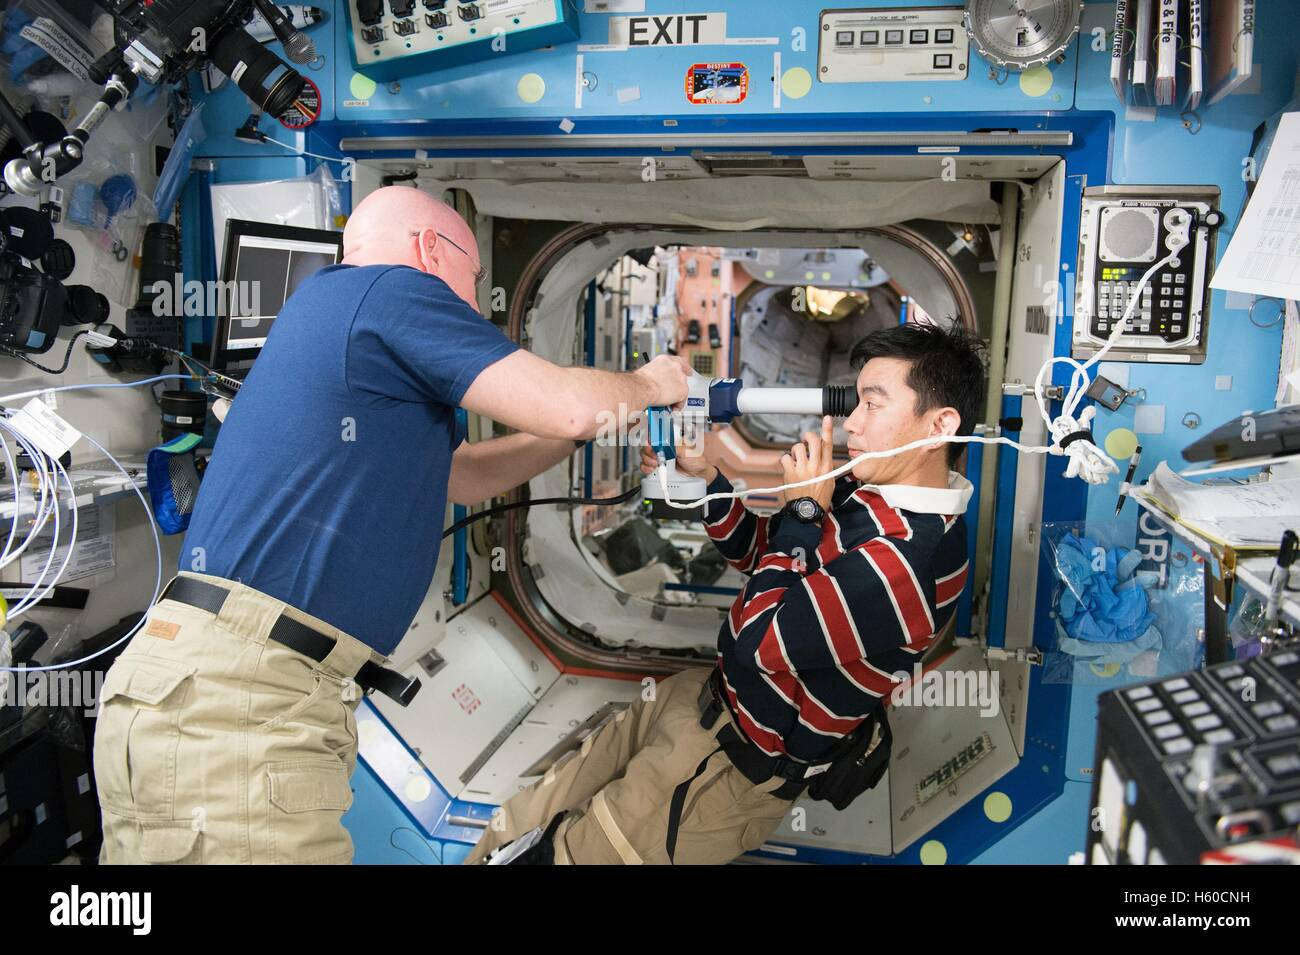 La Station spatiale internationale de la NASA de la mission Expedition 44 aide l'astronaute Scott Kelly, astronaute Photo Stock